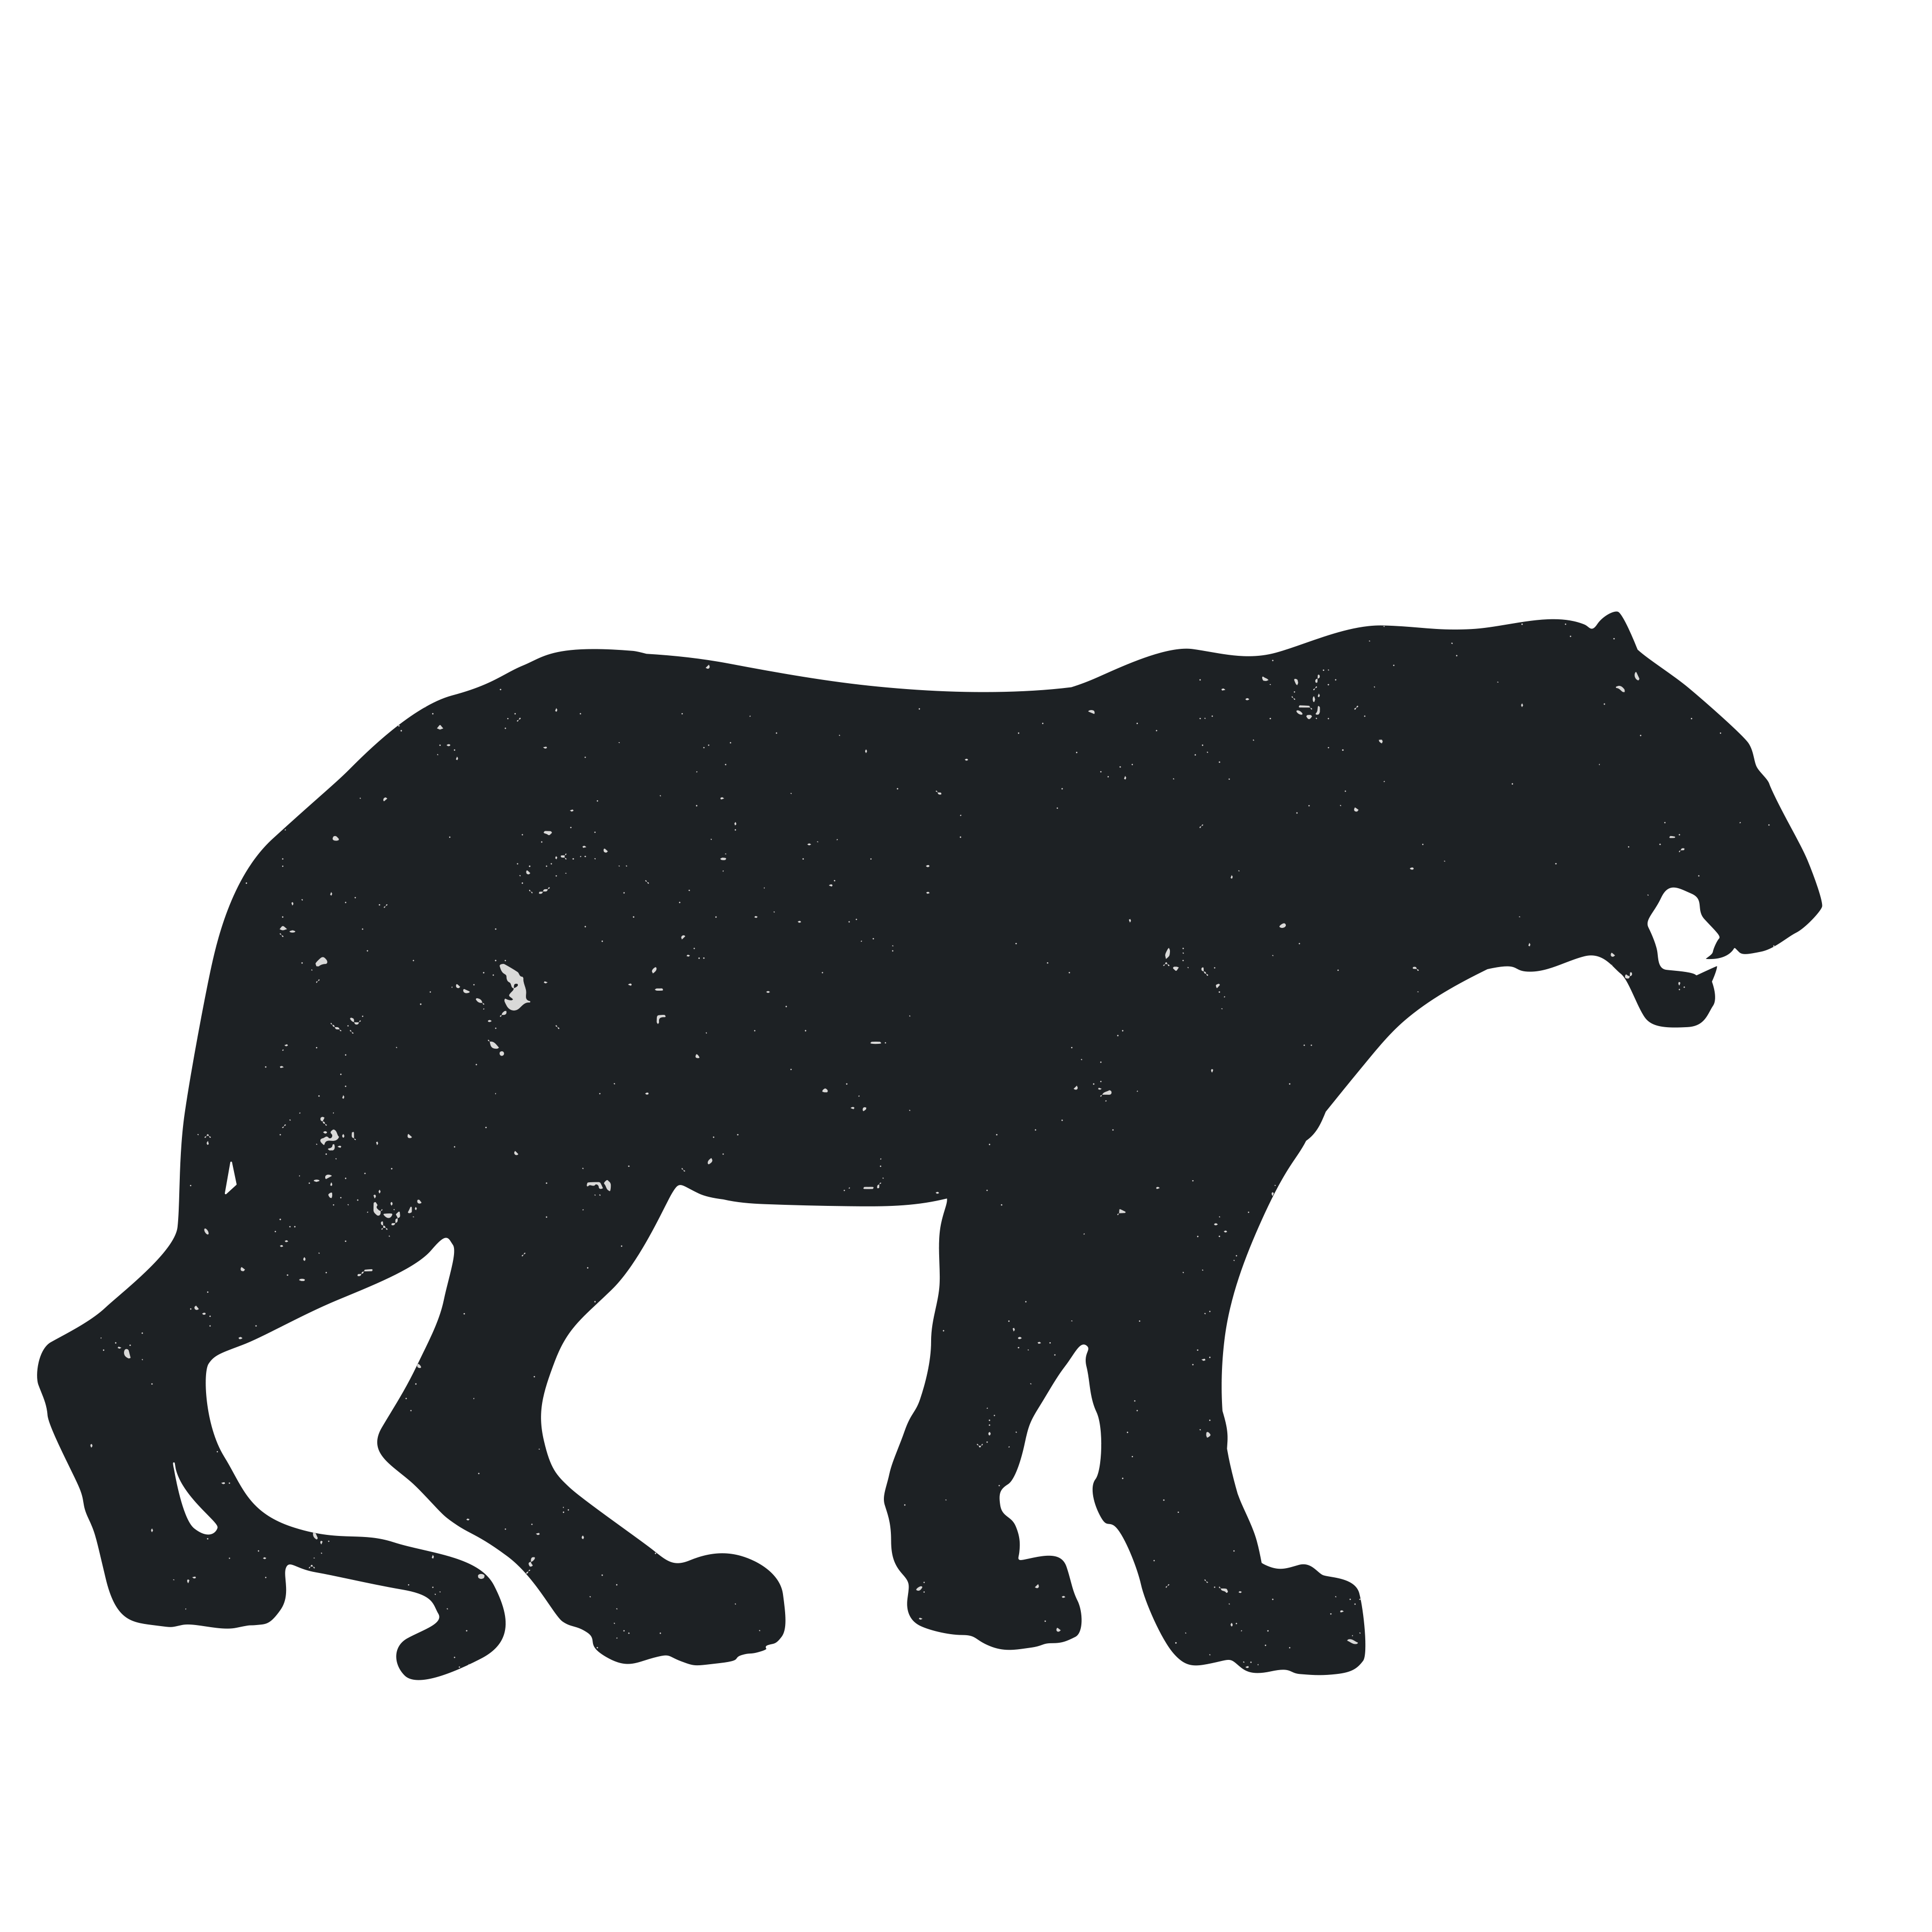 Groundhog clipart shadow. Panther silhouette clip art